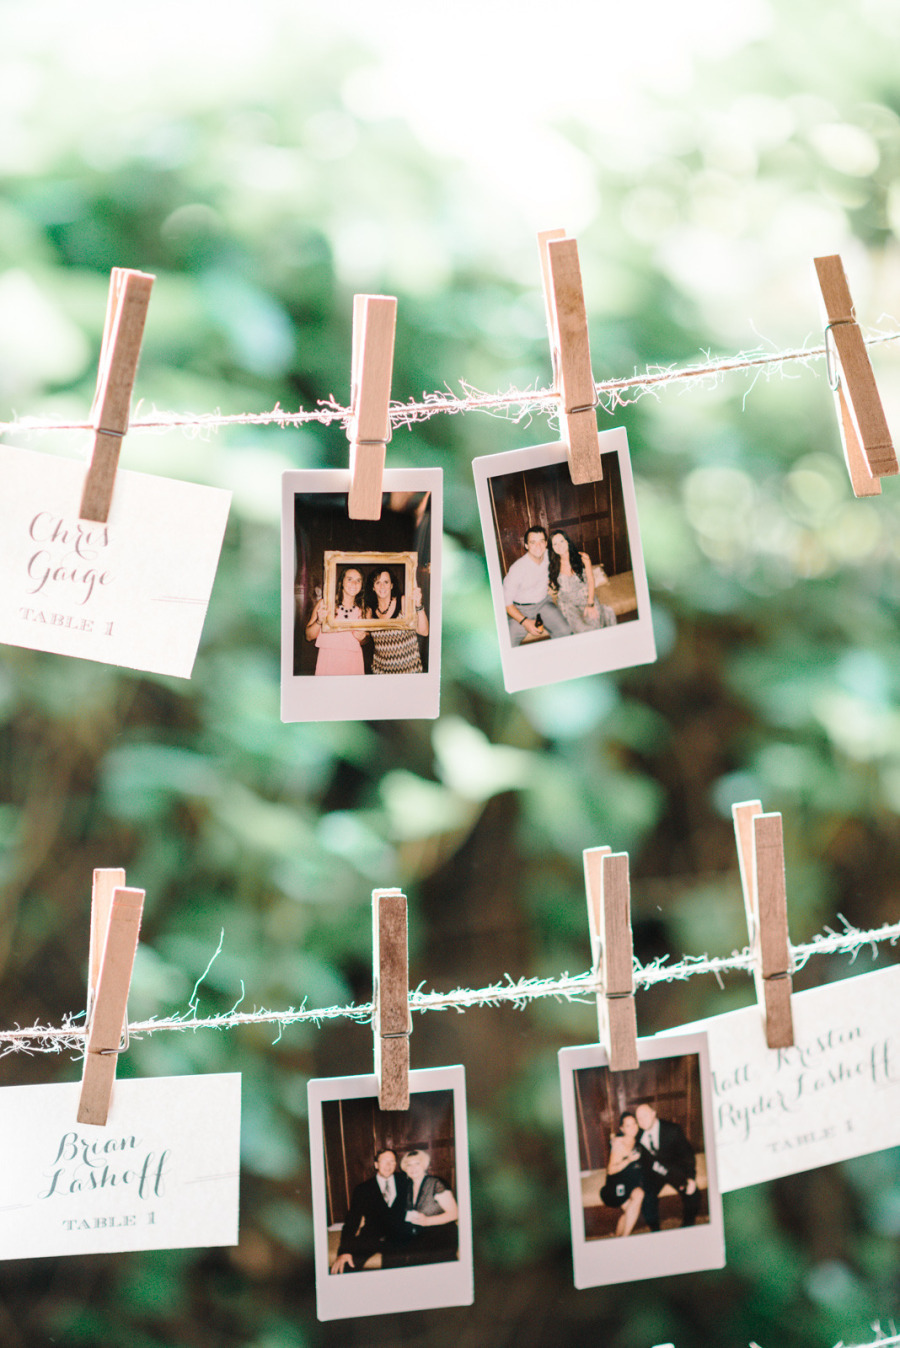 Escort-cards-and-polaroids-hang-from-clothes-line.full